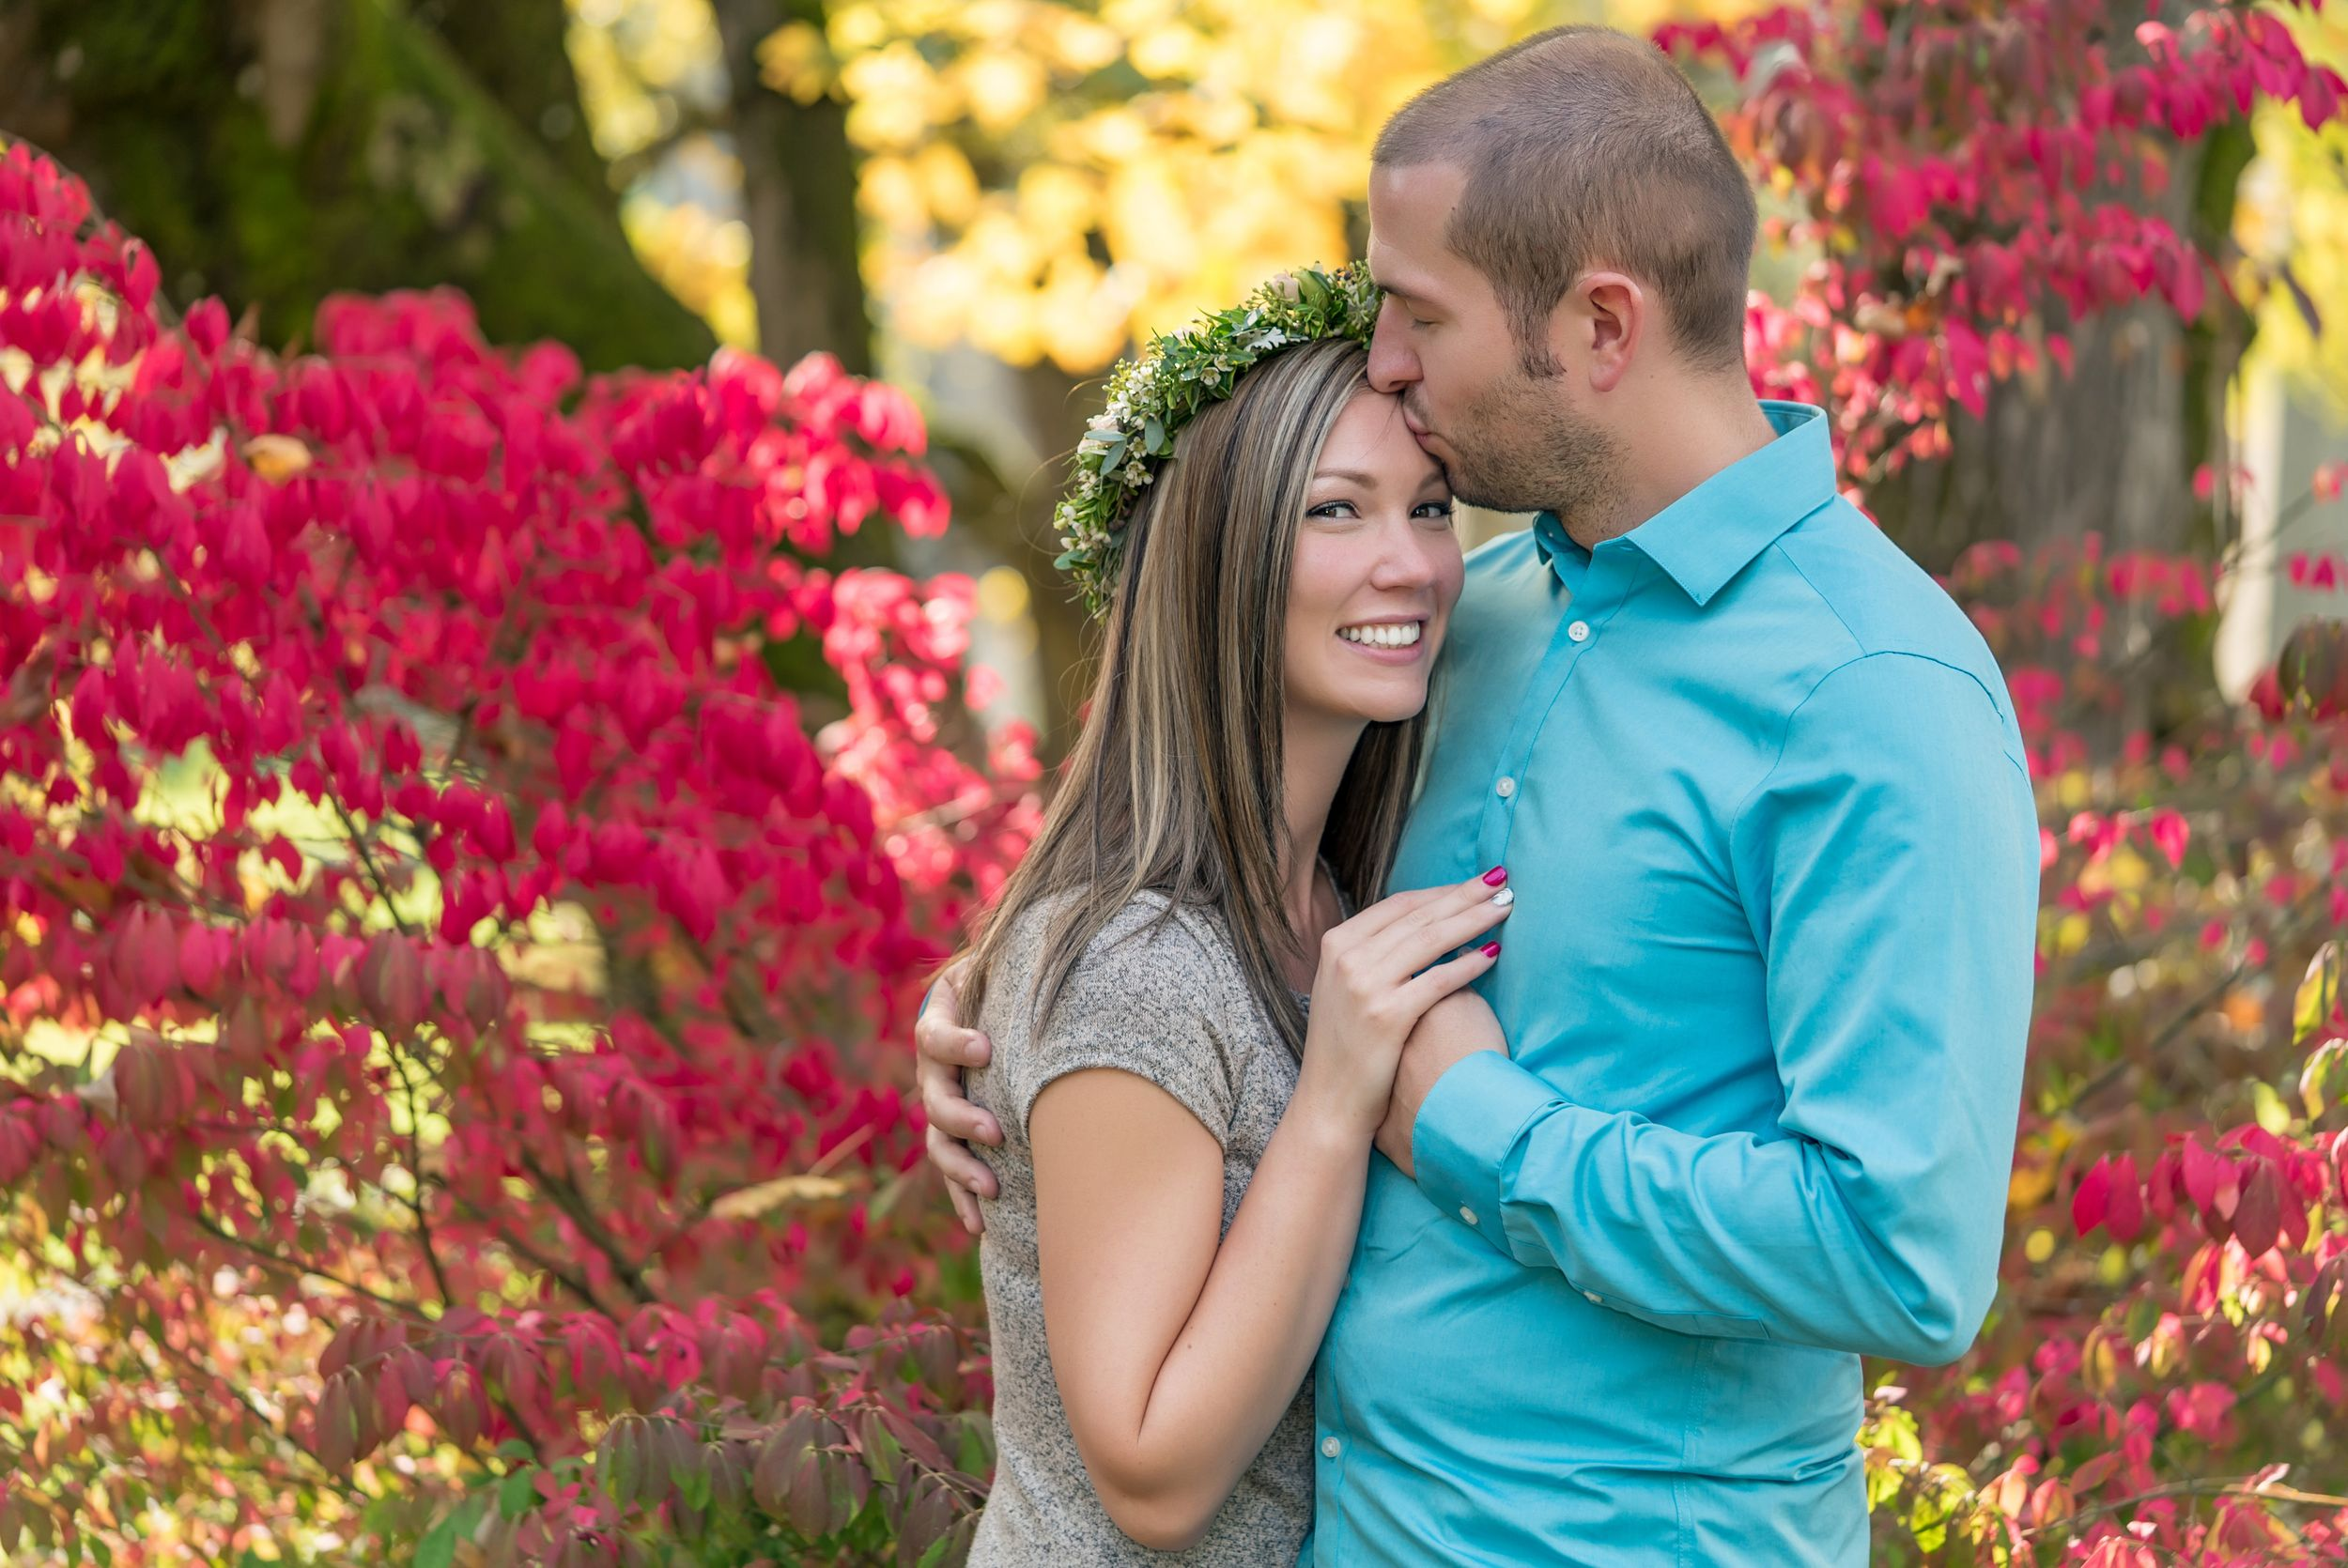 Couple's portrait in the fall - Engagement photography